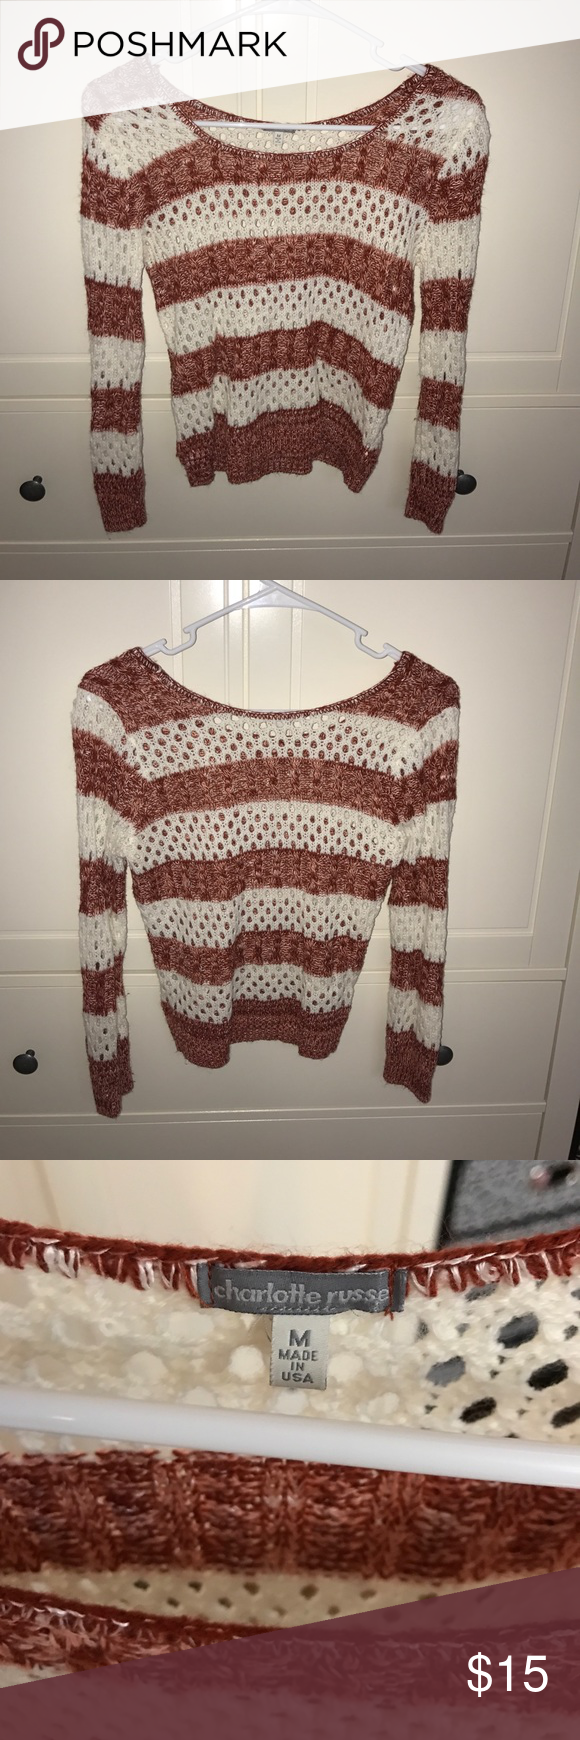 Charlotte Russe Knitted Sweater Like new! Only worn once. Red and while striped sweater with holes. Size M. Charlotte Russe Sweaters Crew & Scoop Necks